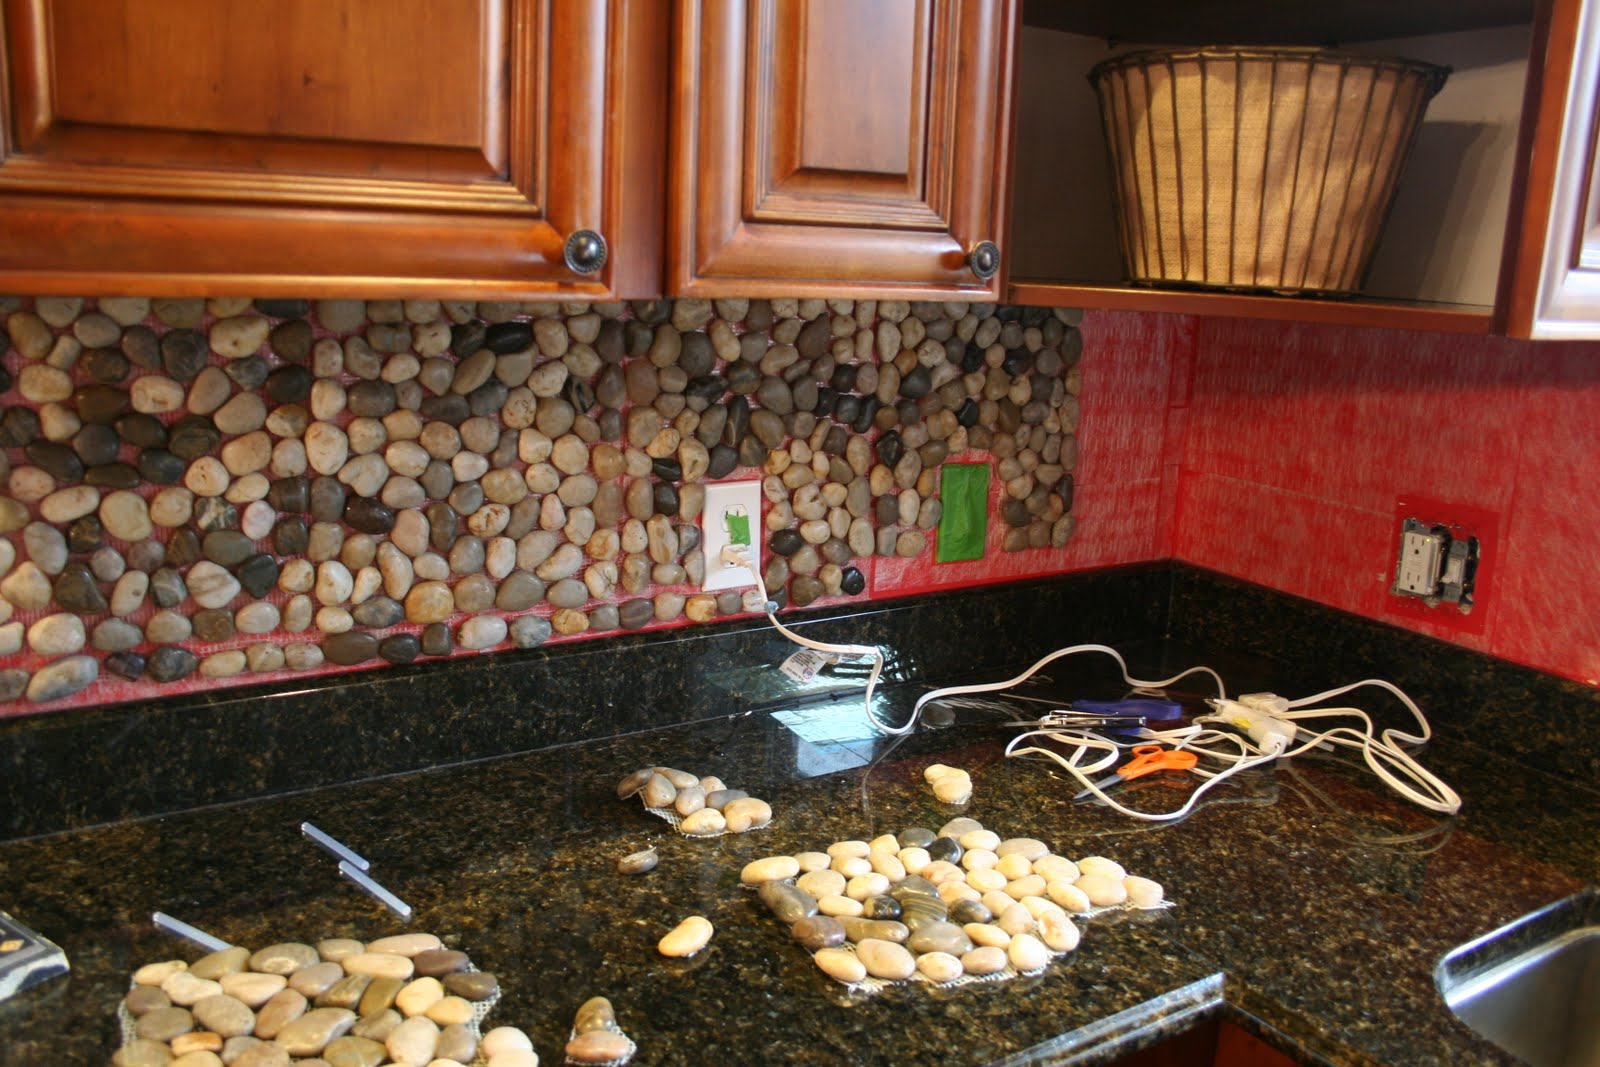 Kitchen Backsplash Rock garden stone kitchen backsplash tutorial {how to backsplash